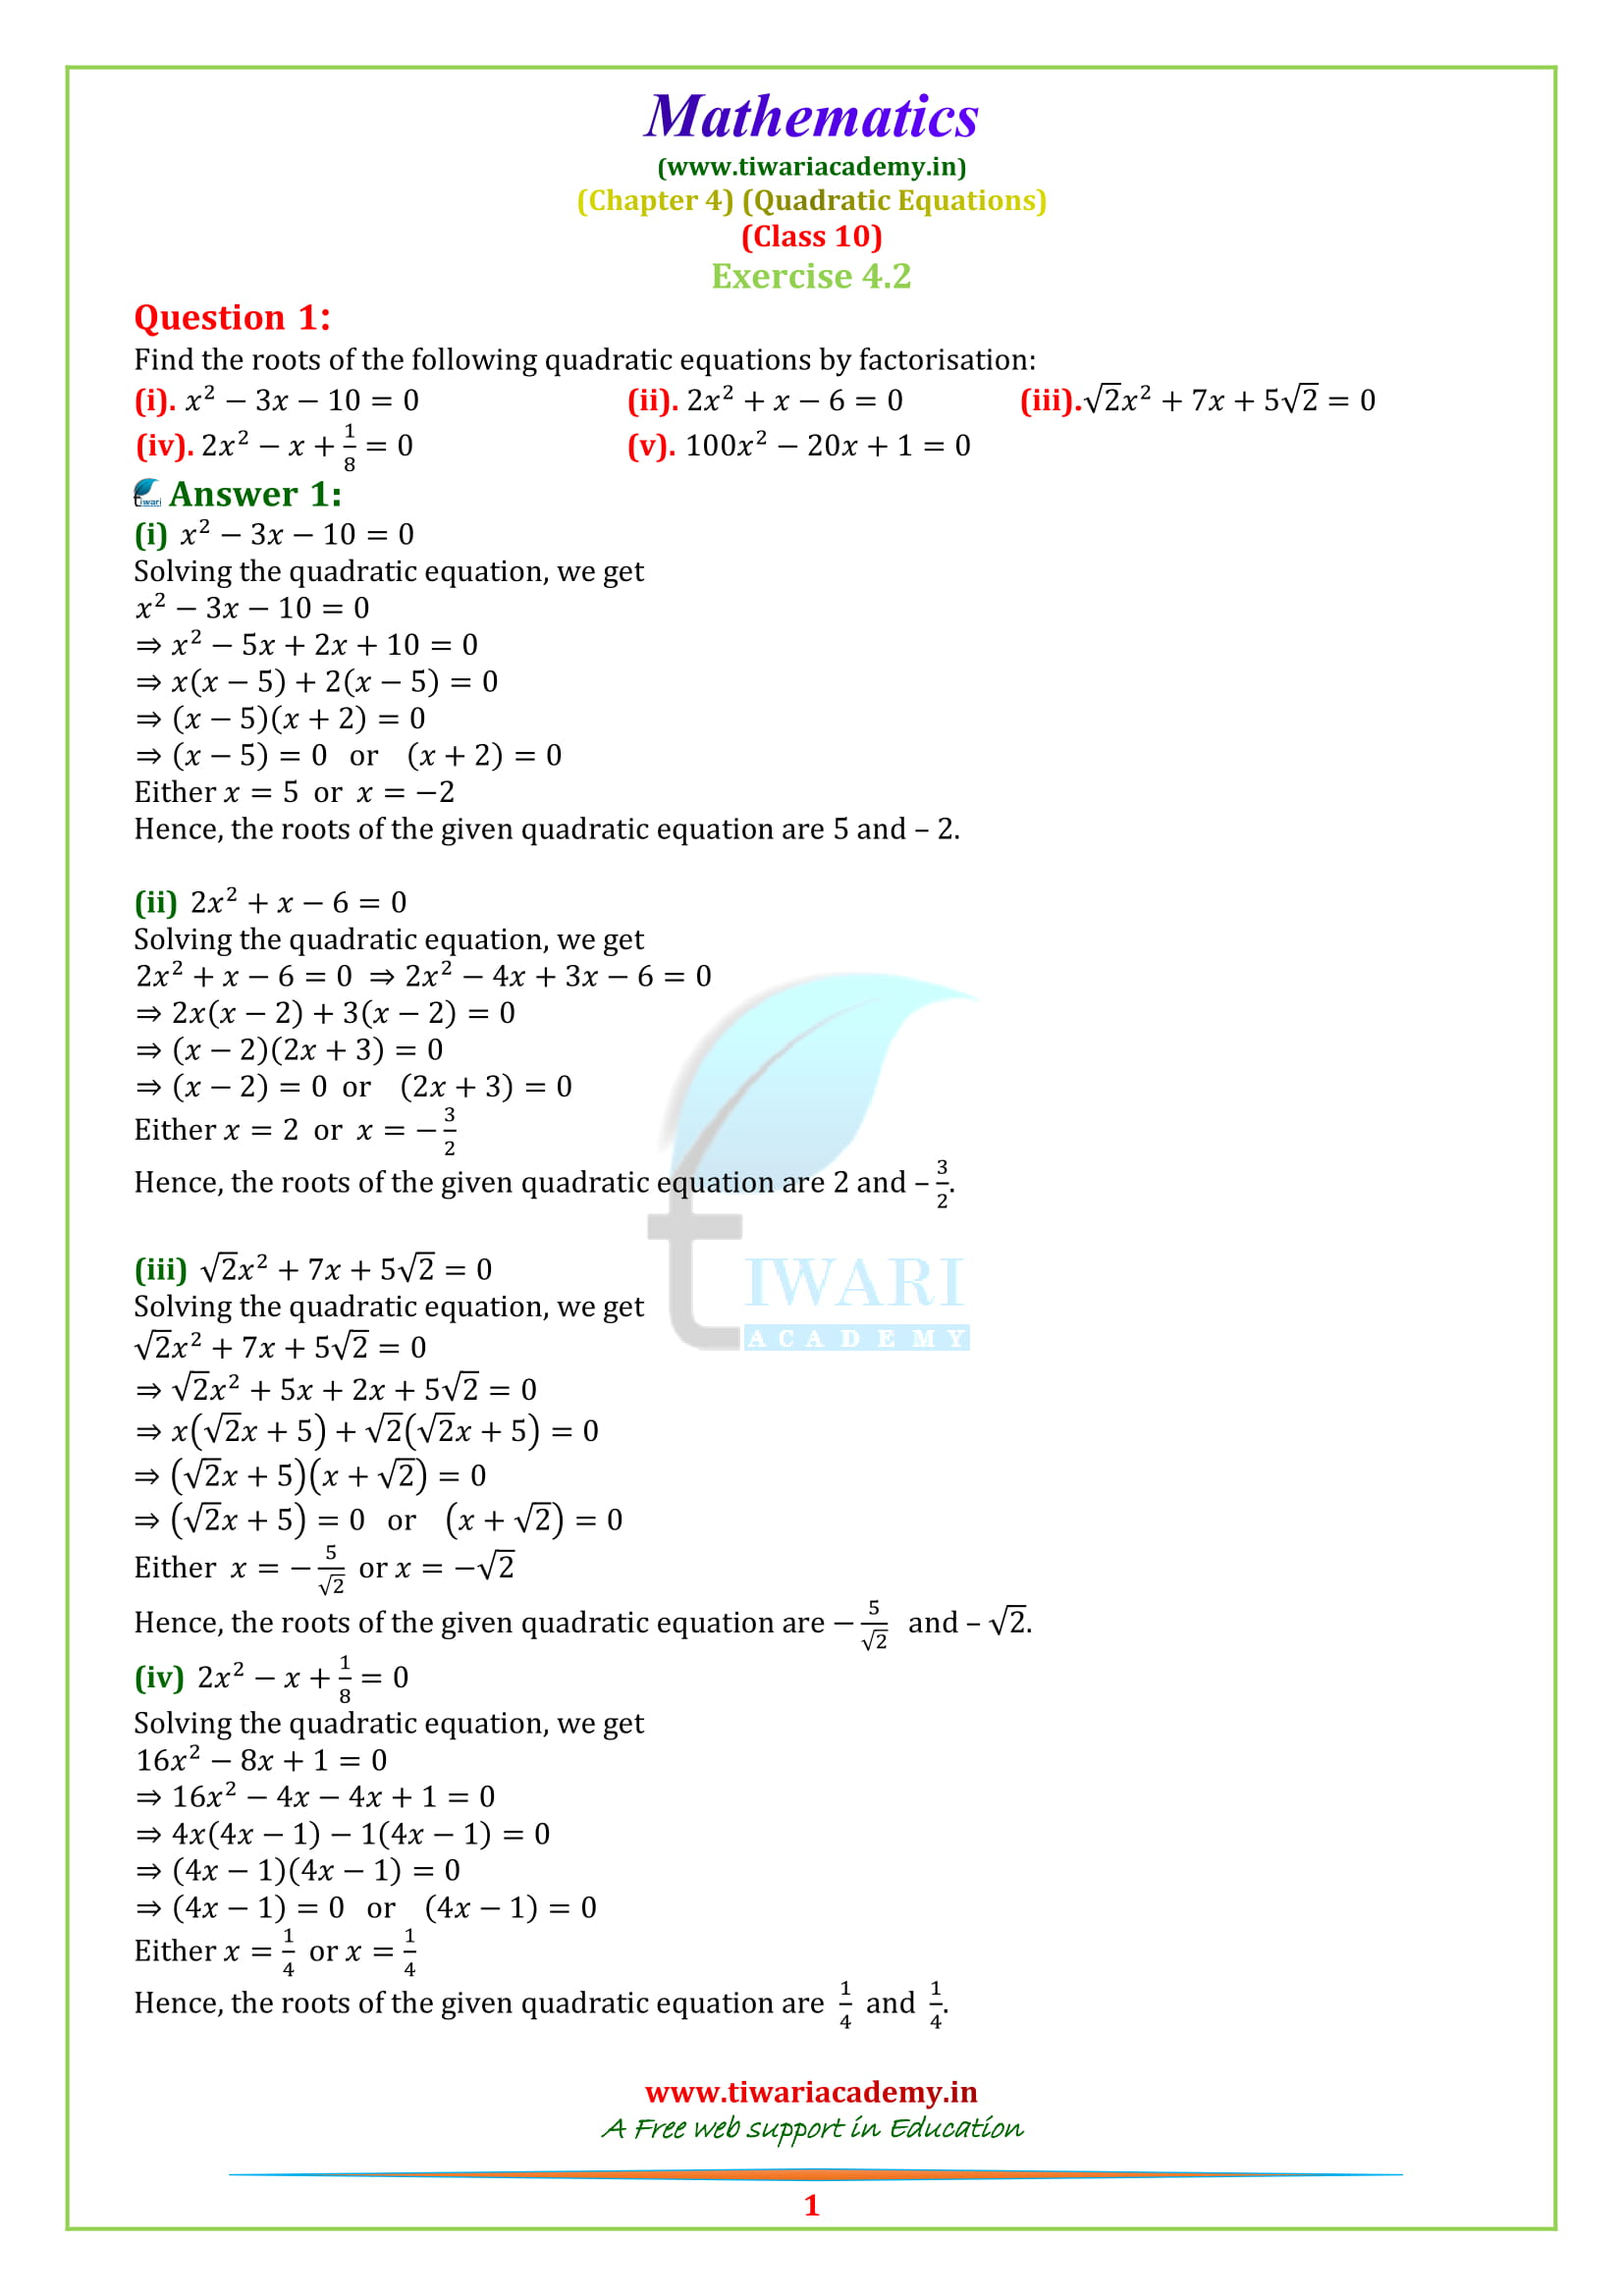 Class 10 Maths Exercise 4.2 solutions in English medium